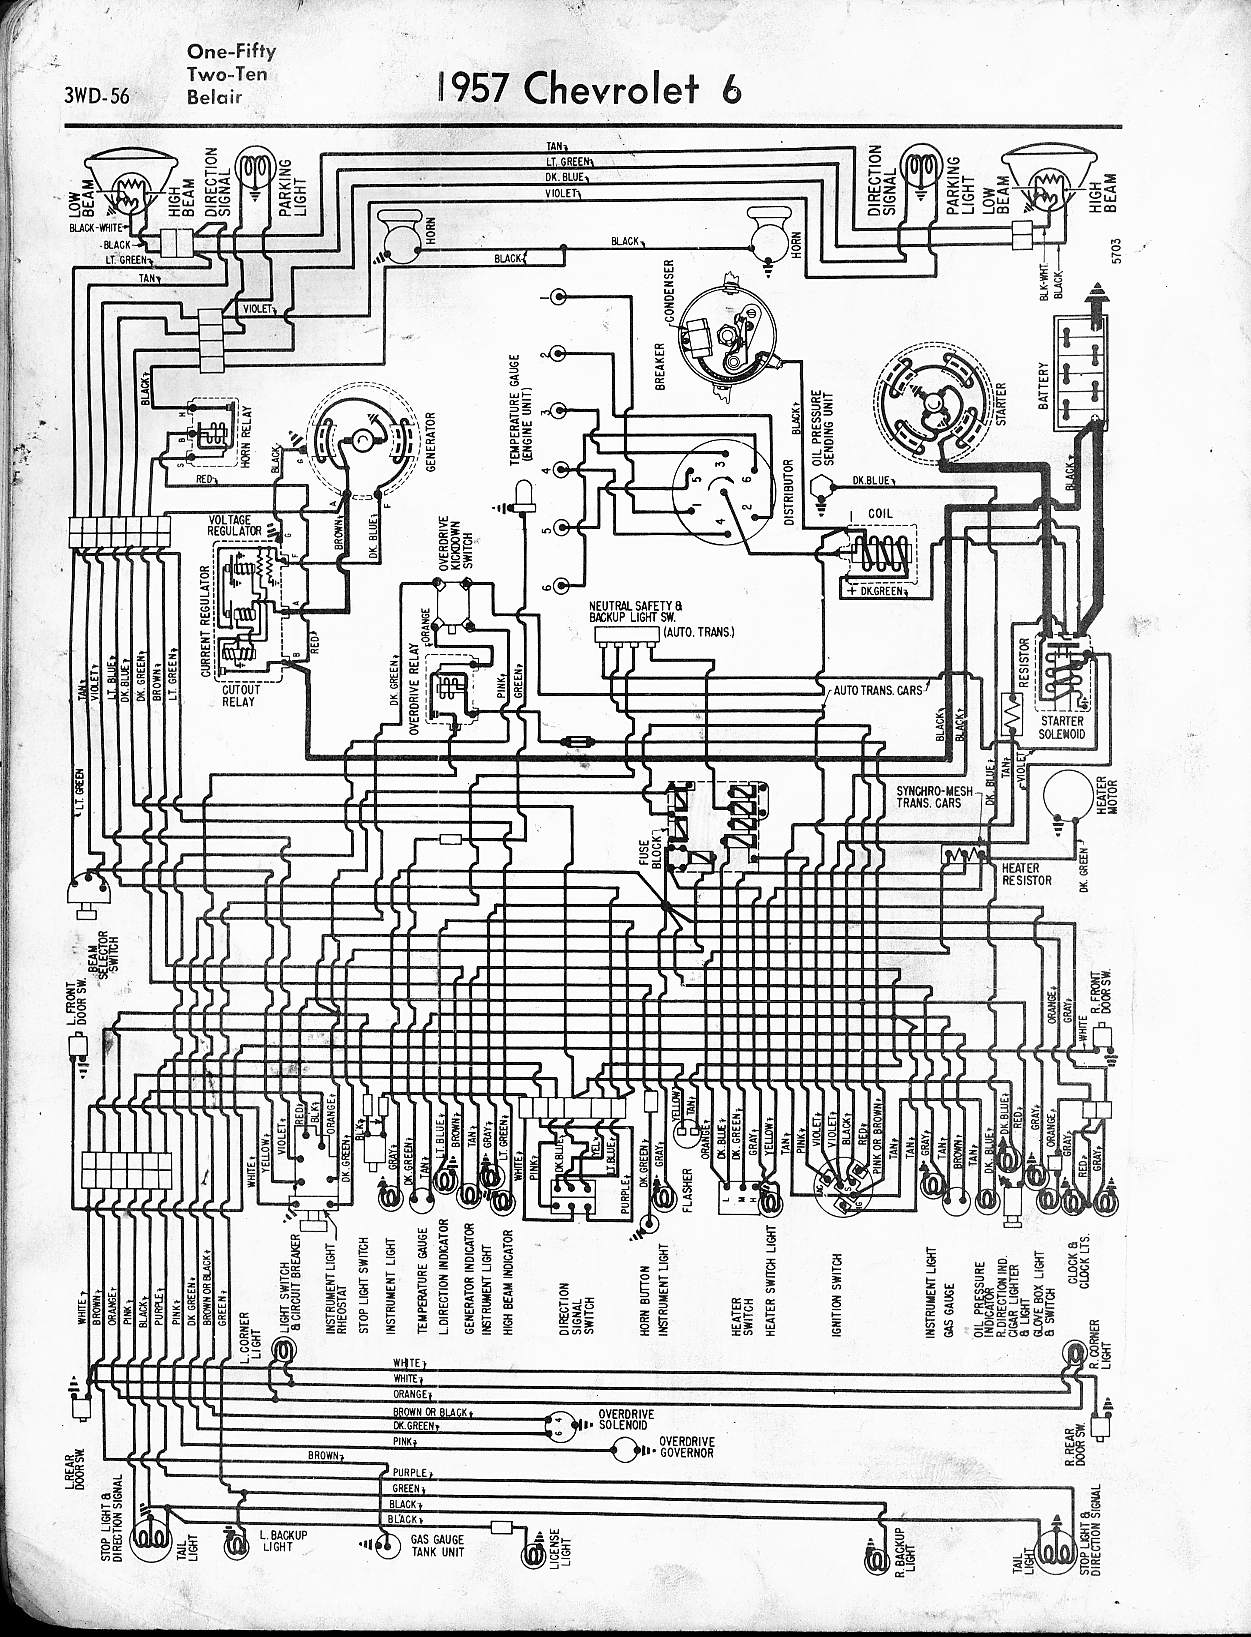 57 chevy wiring diagram wiring diagram 57 chevy fuse box diagram schematics